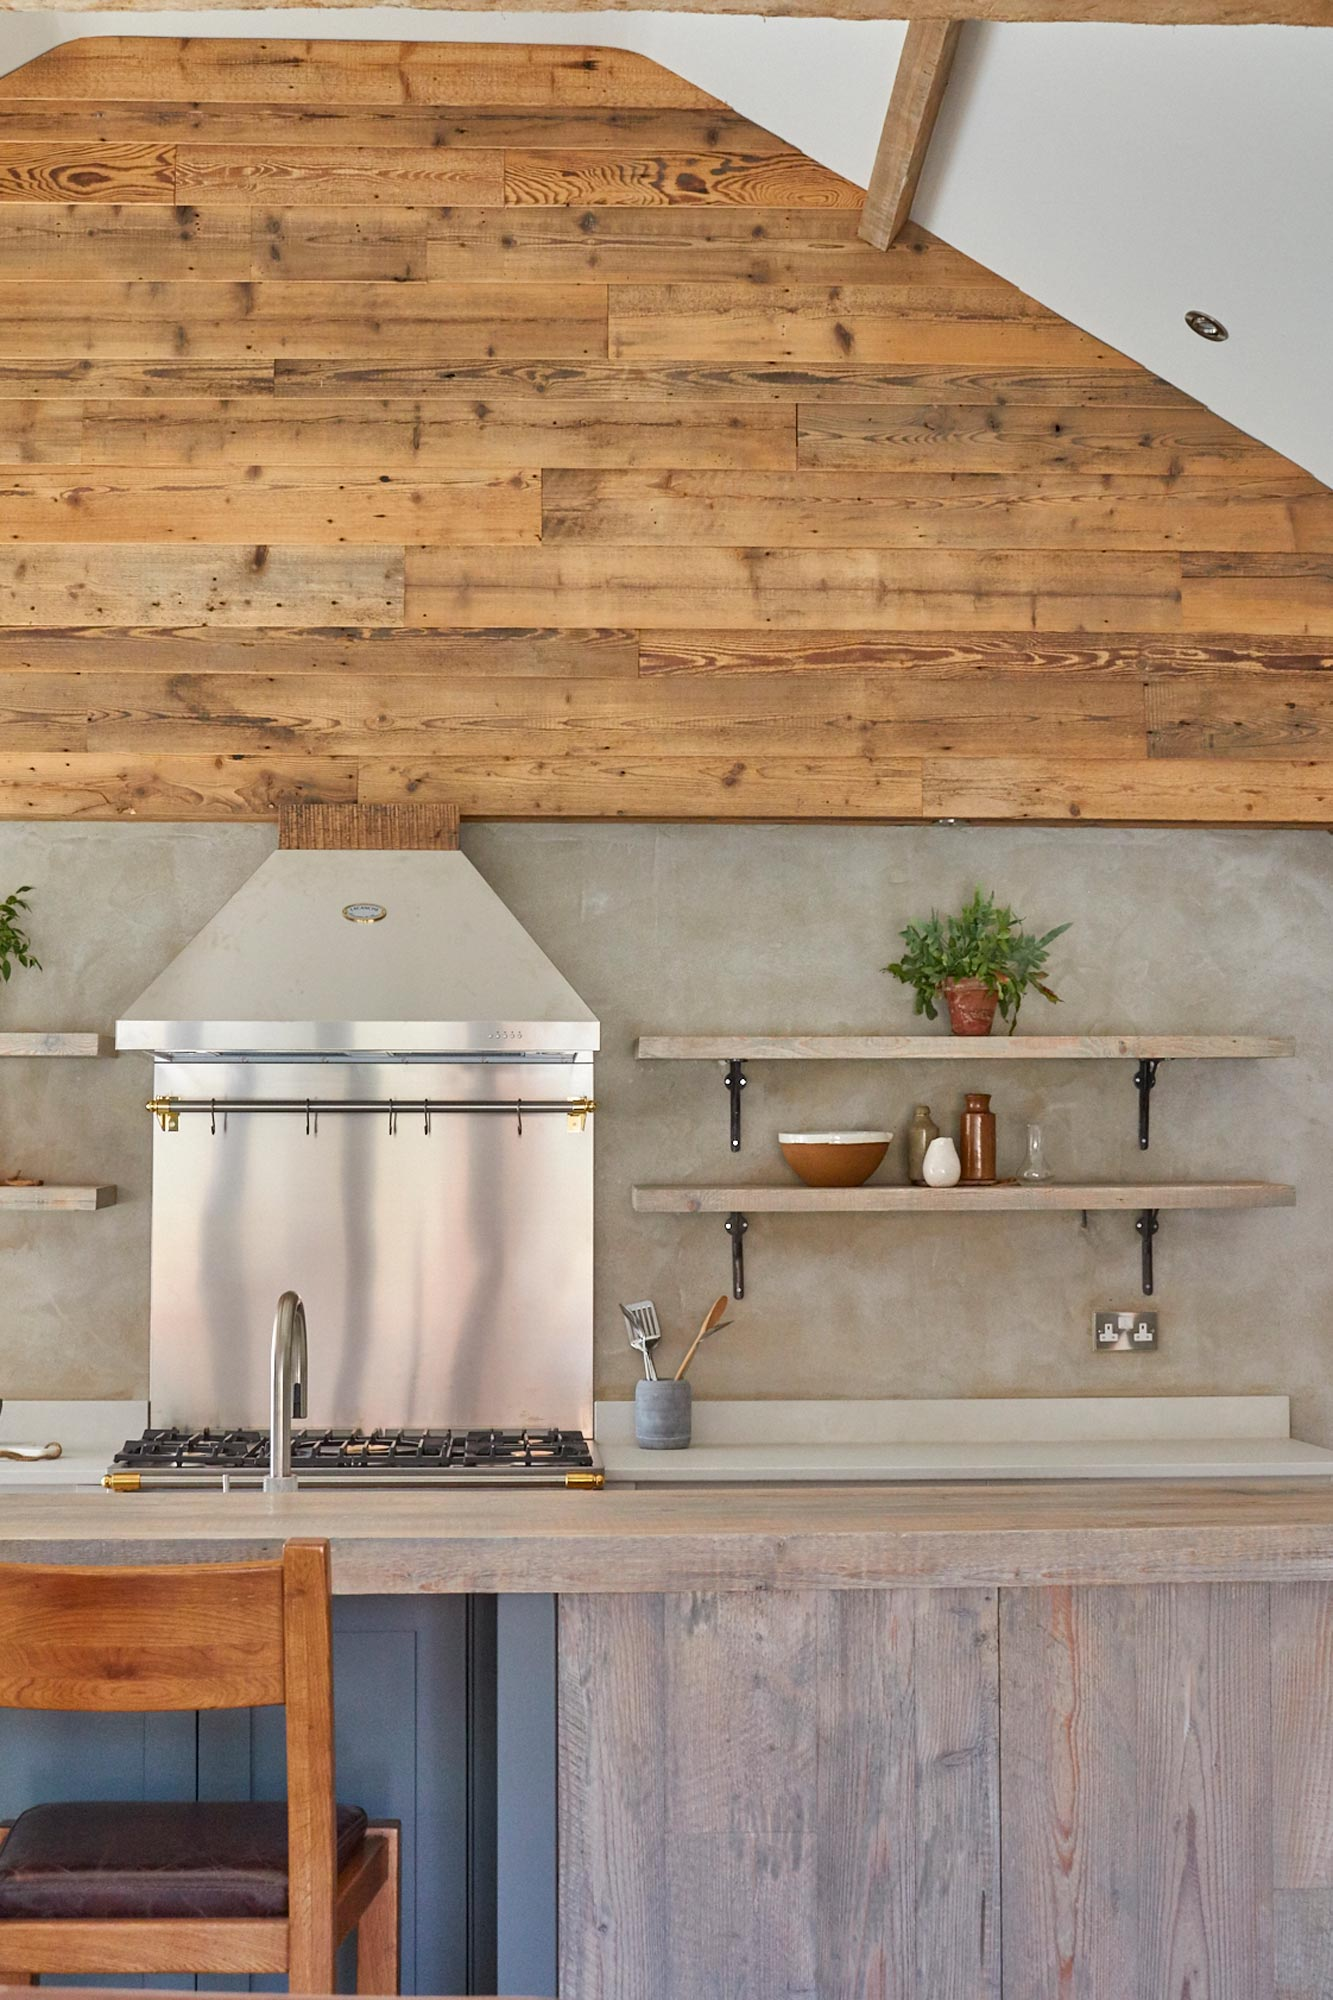 Interior vaulted wall cladded with reclaimed pine timber